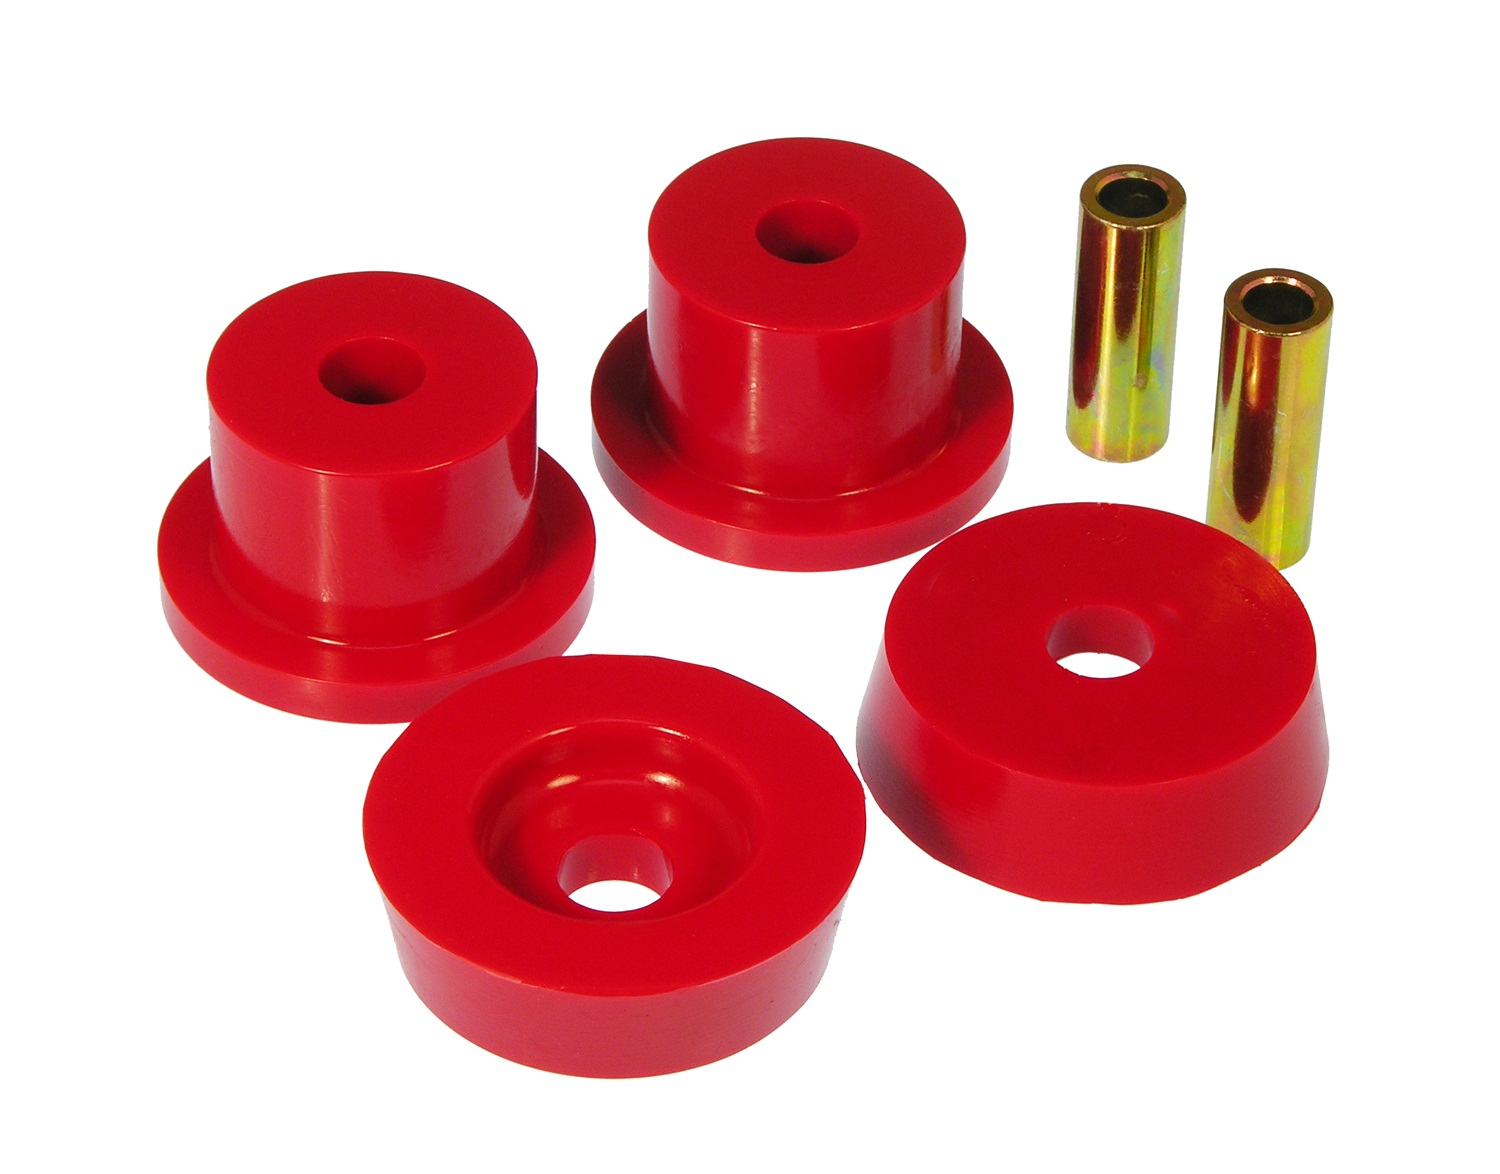 Prothane 12-1601 Differential Bushing Kit Fits 90-97 Miata